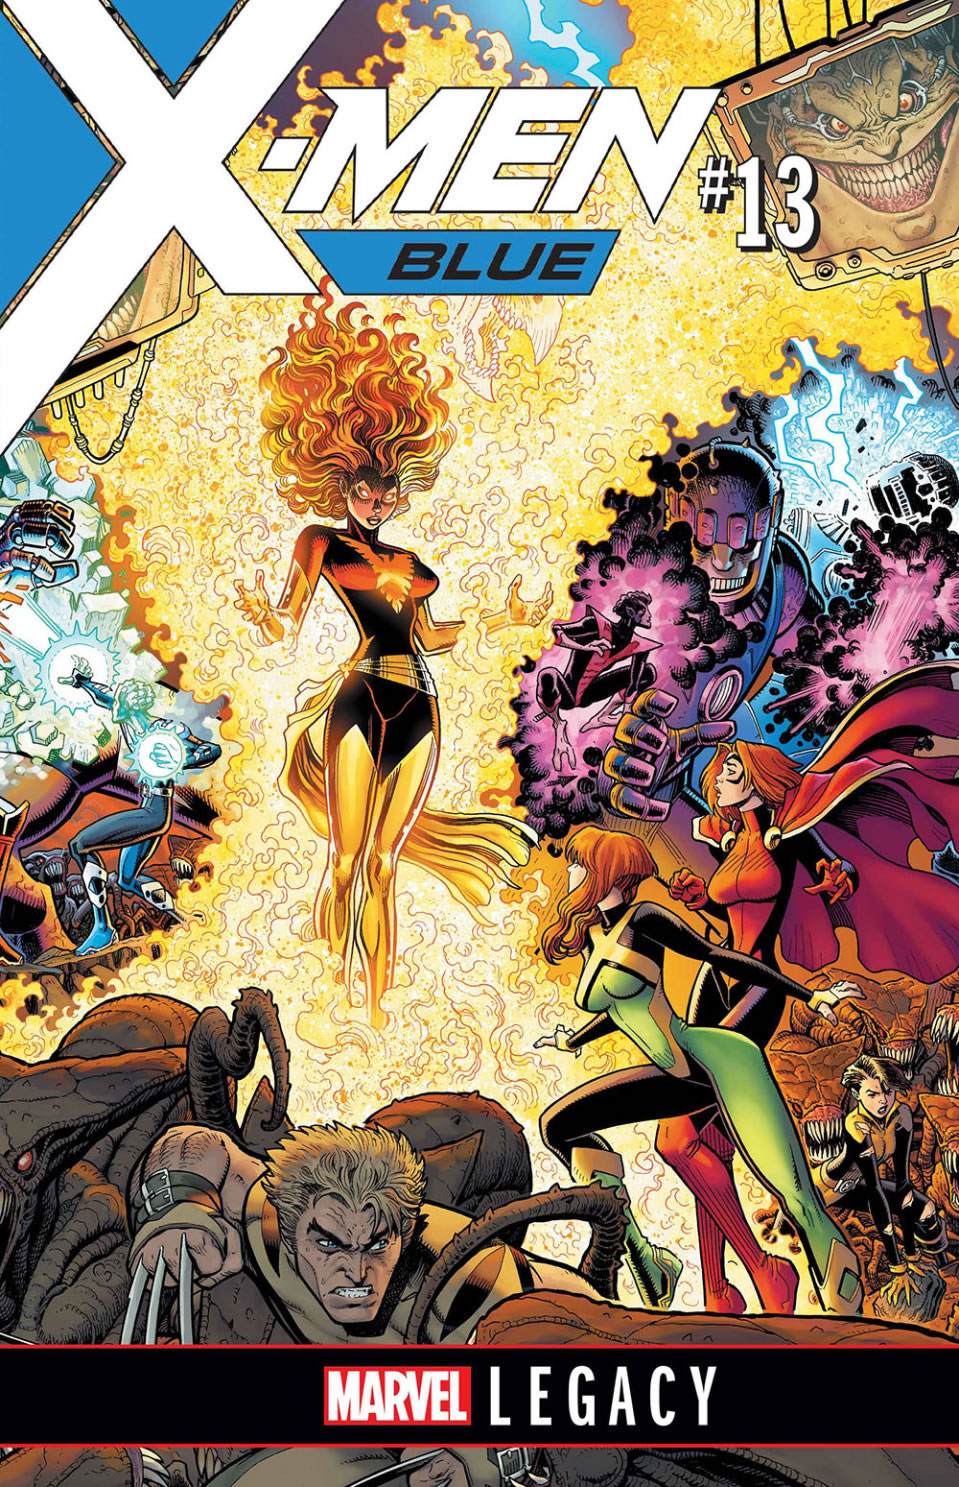 X-Men Blue issue #13 cover